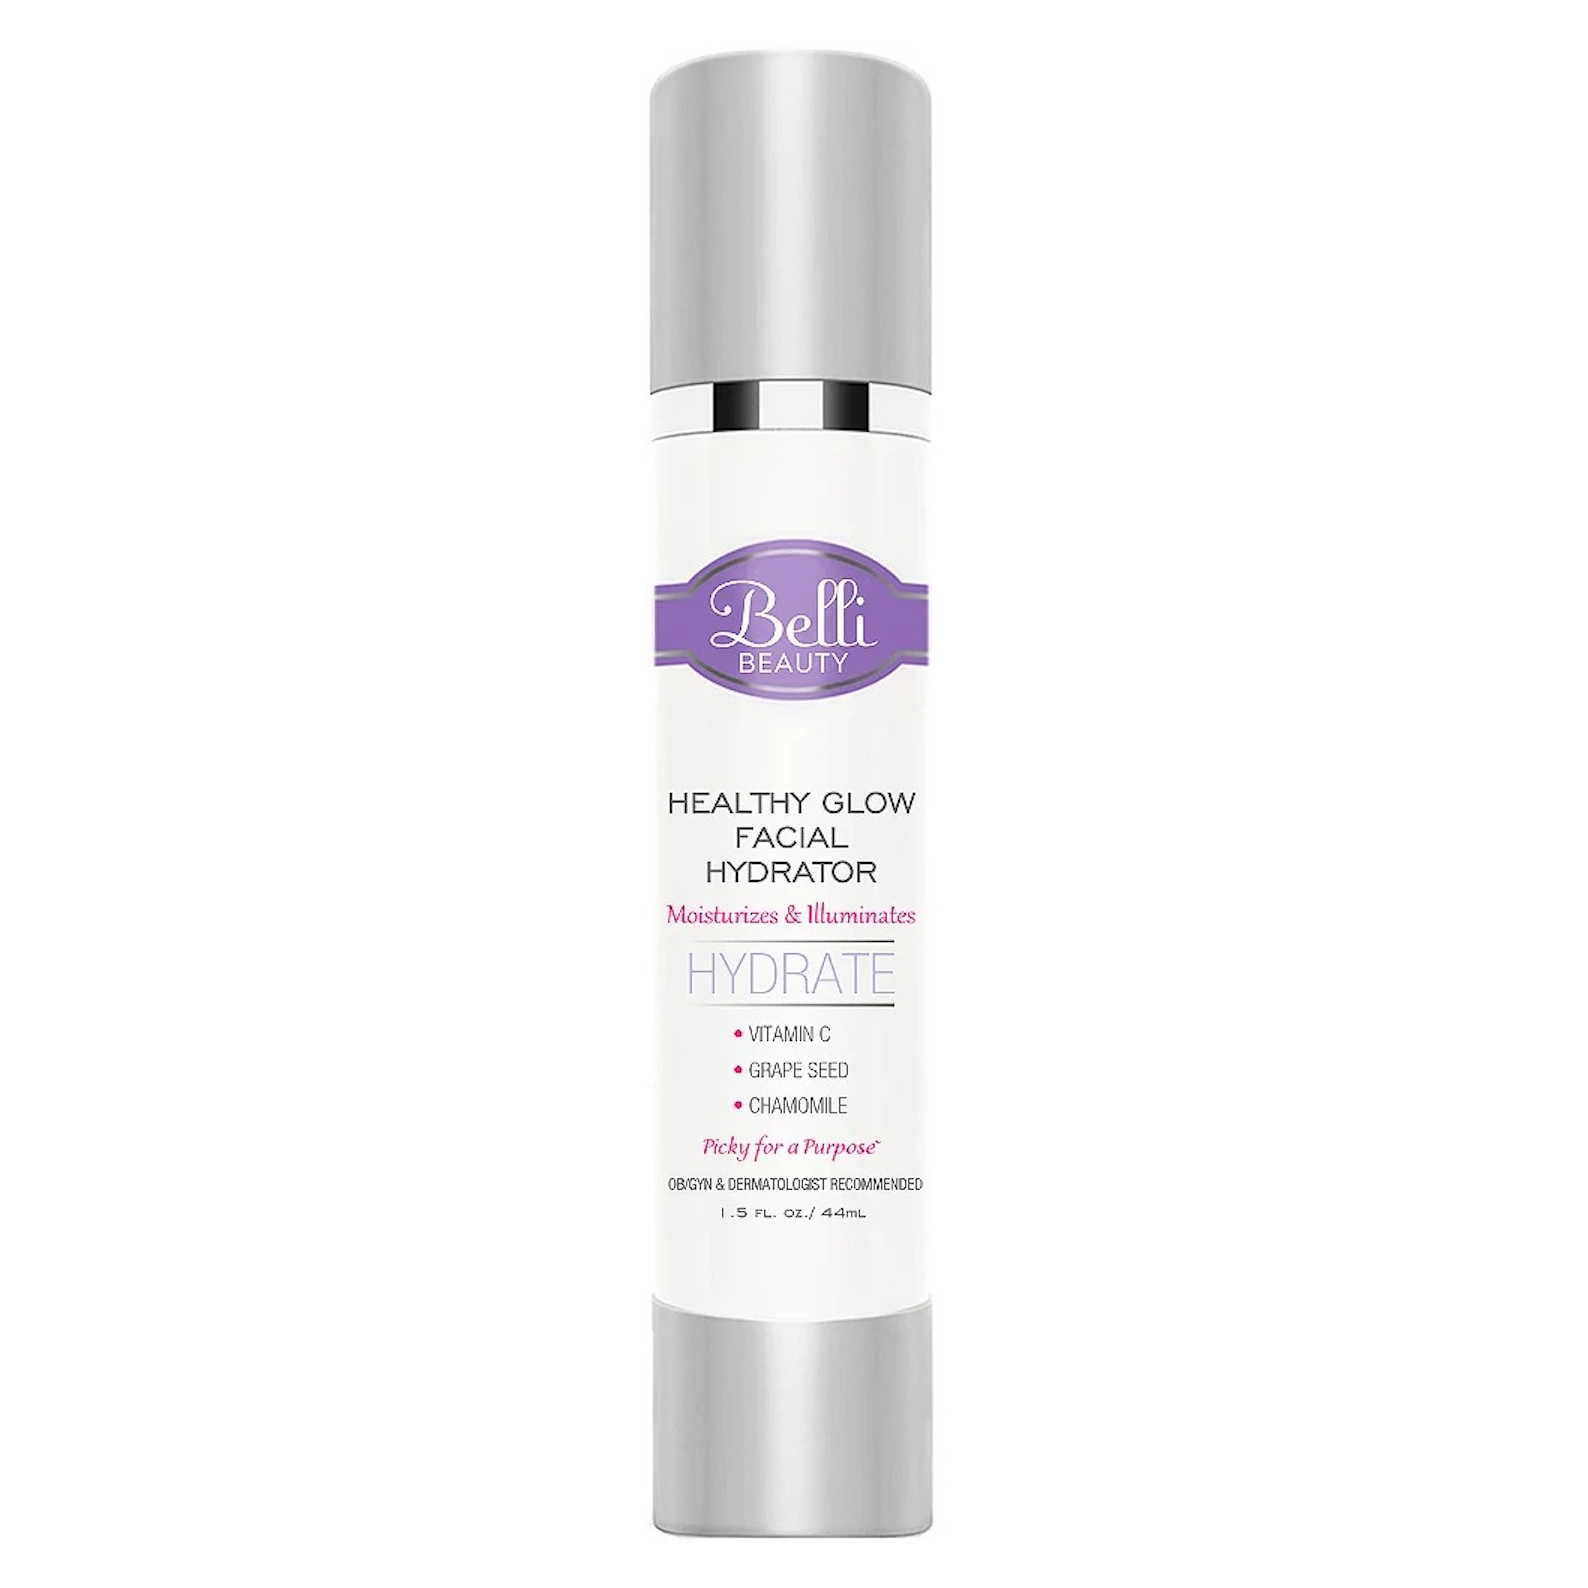 Belli Beauty Healthy Glow Facial Hydrator